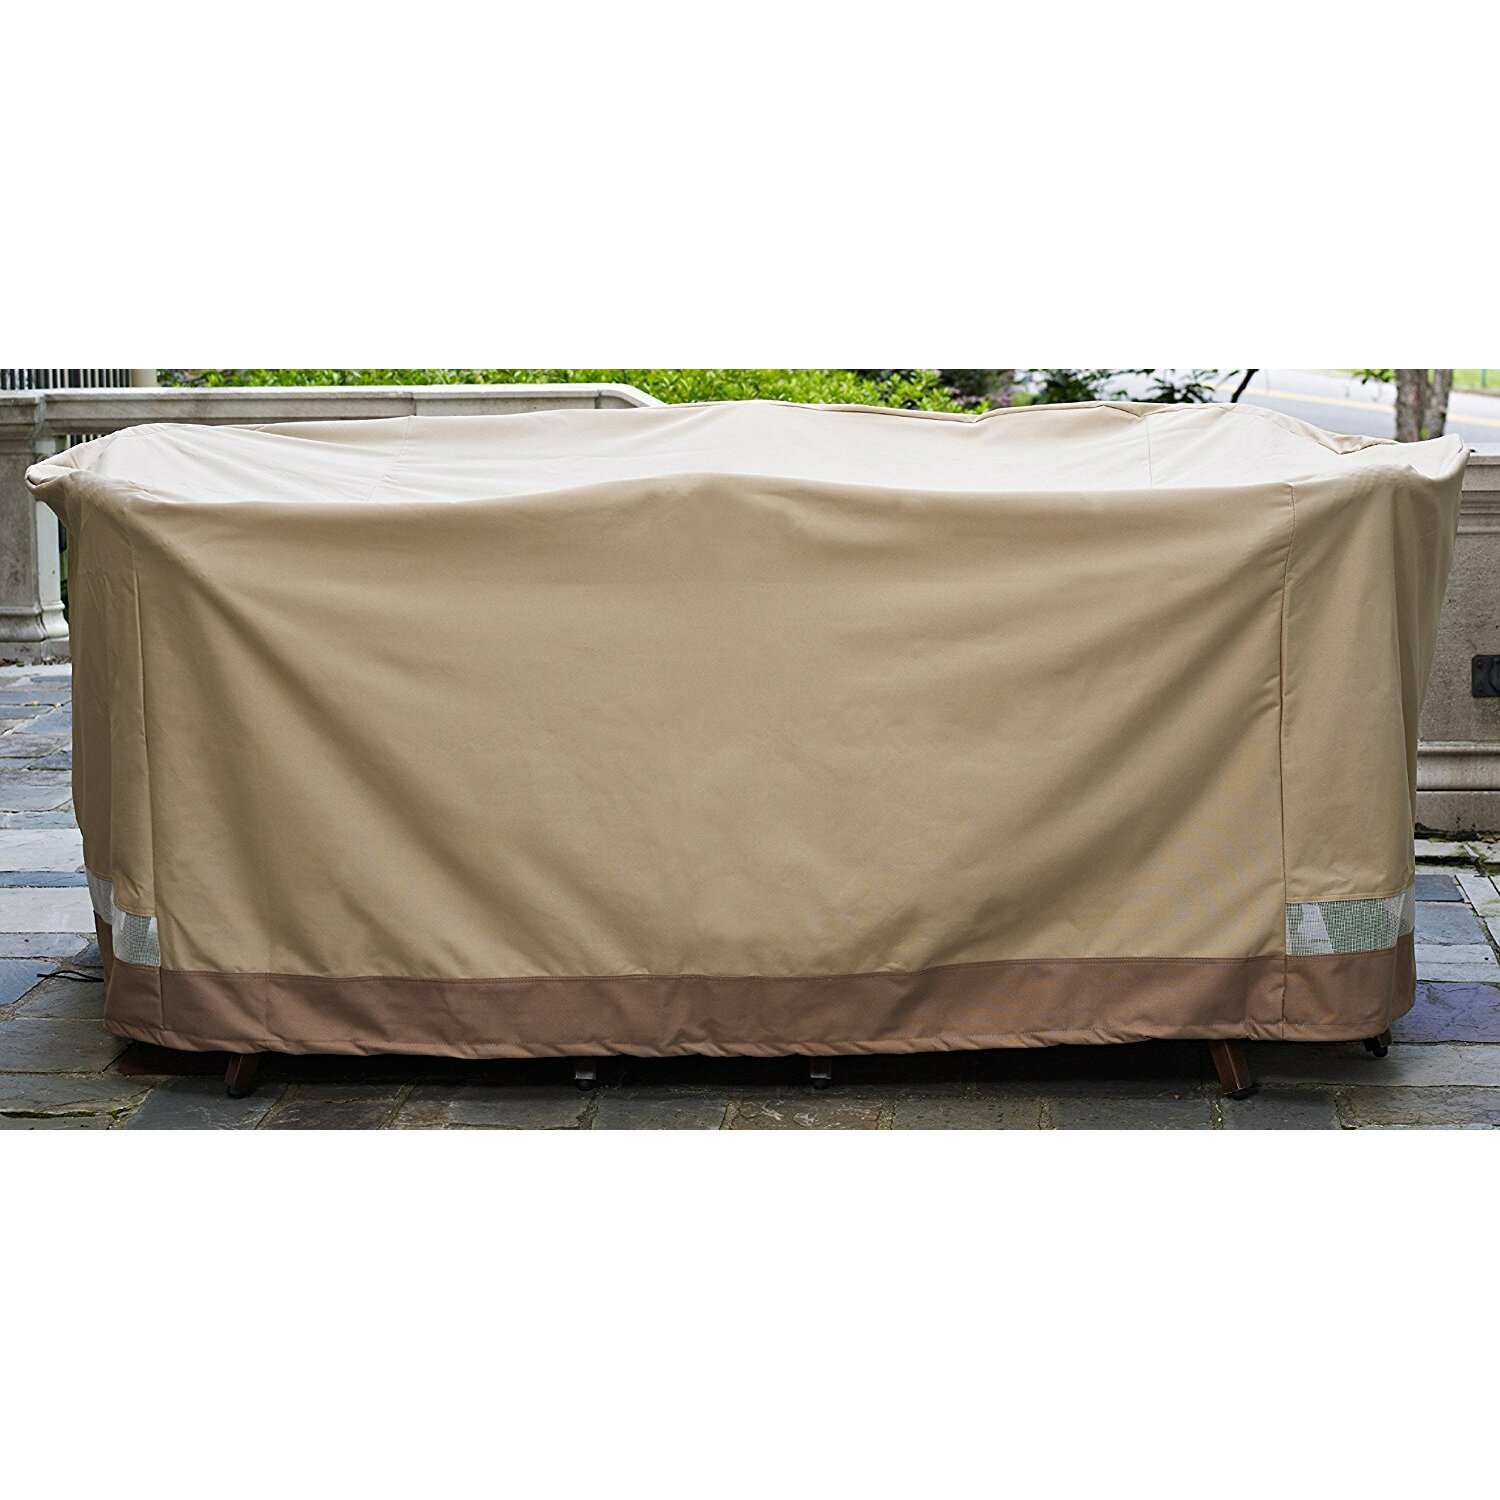 Freeport park oversized patio dining set cover wayfairca for Wayfair garden furniture covers